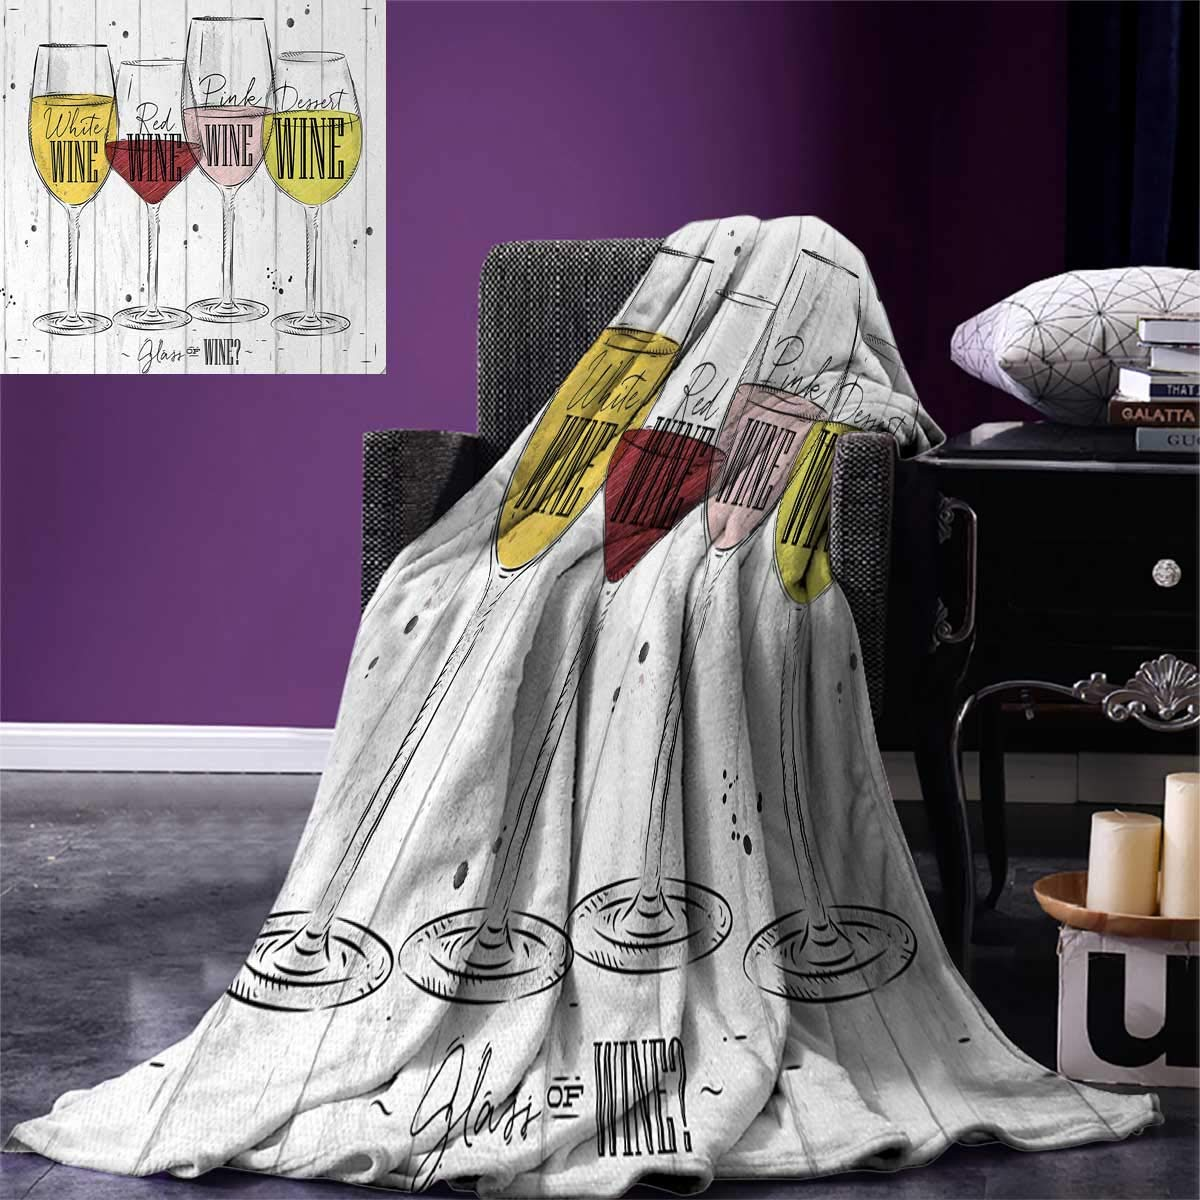 Wine Throw Blanket Four Main Types of Wine with Their Names Glasses Vintage Rustic Wood Backdrop Drawing Warm Microfiber All Season Blanket for Bed or Couch 50''x30'' Multicolor